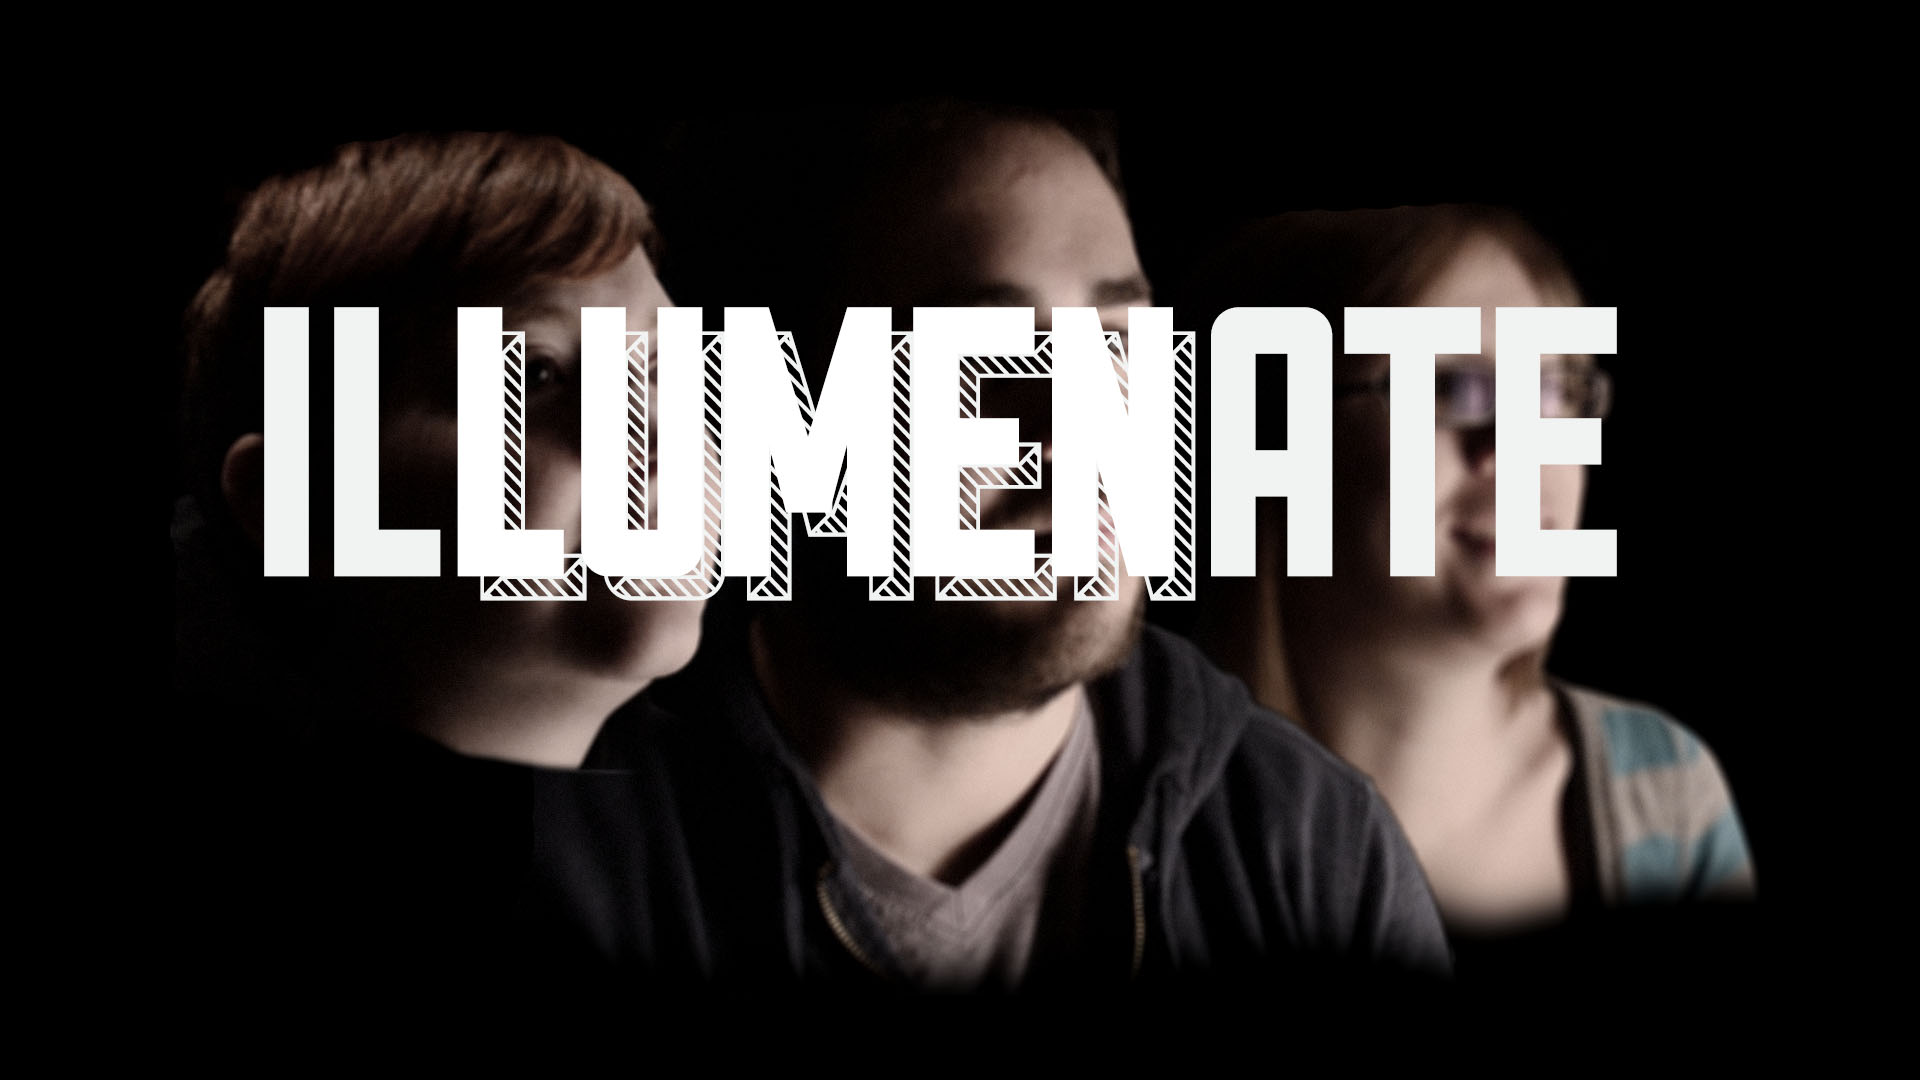 ILLUMENATE